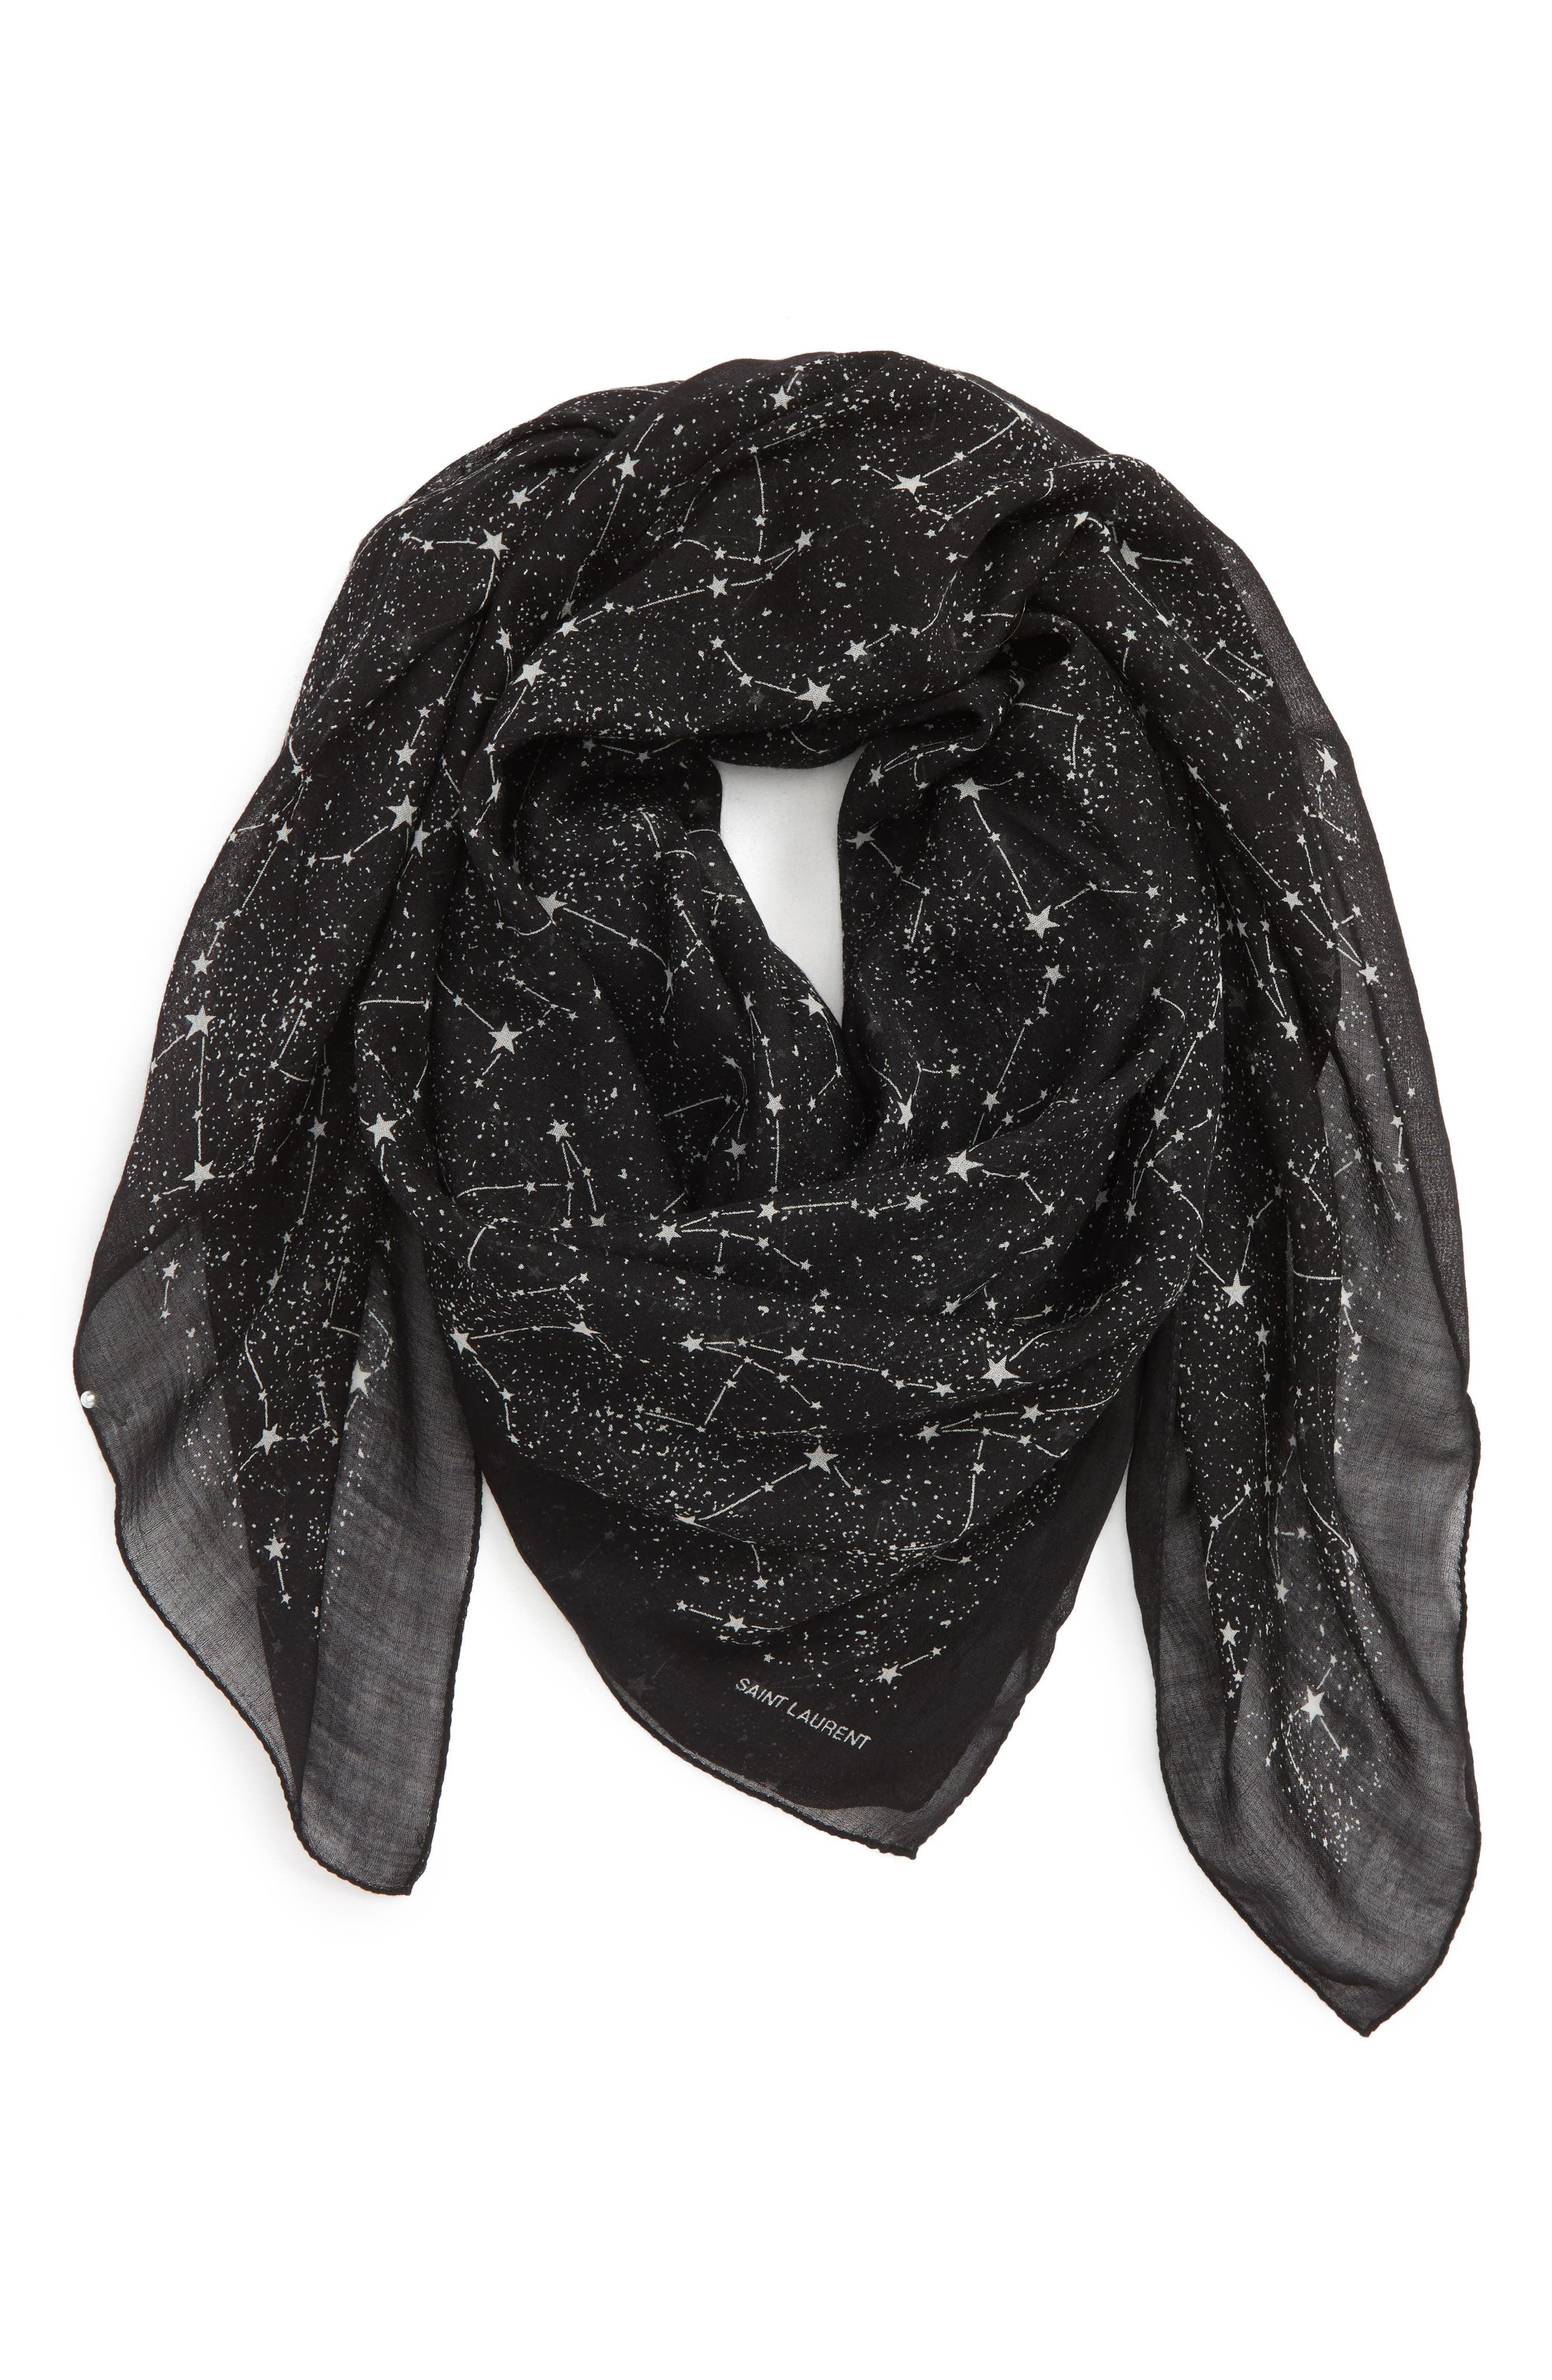 SAINT LAURENT Constellation Square Wool Scarf, Main, color, BLACK/ IVORY